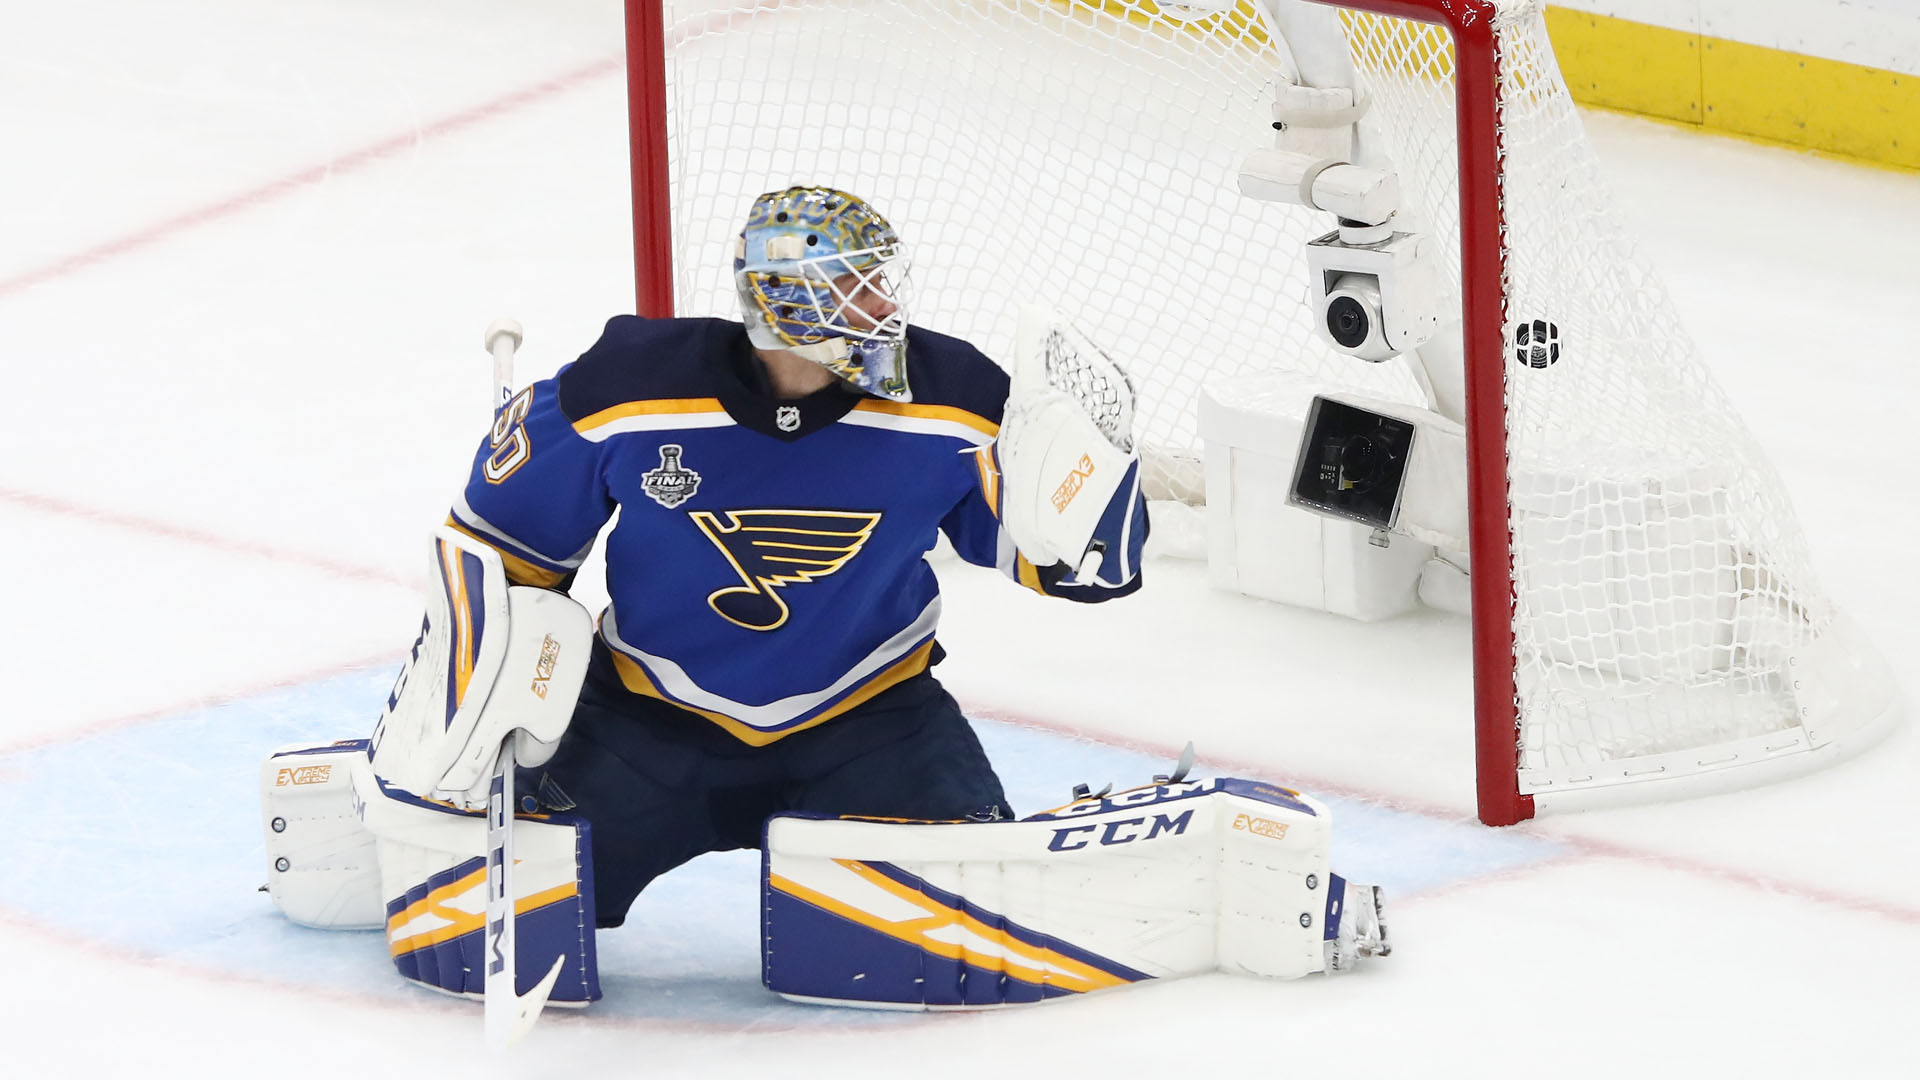 Blues reward Jordan Binnington with 2-year deal after Stanley Cup win